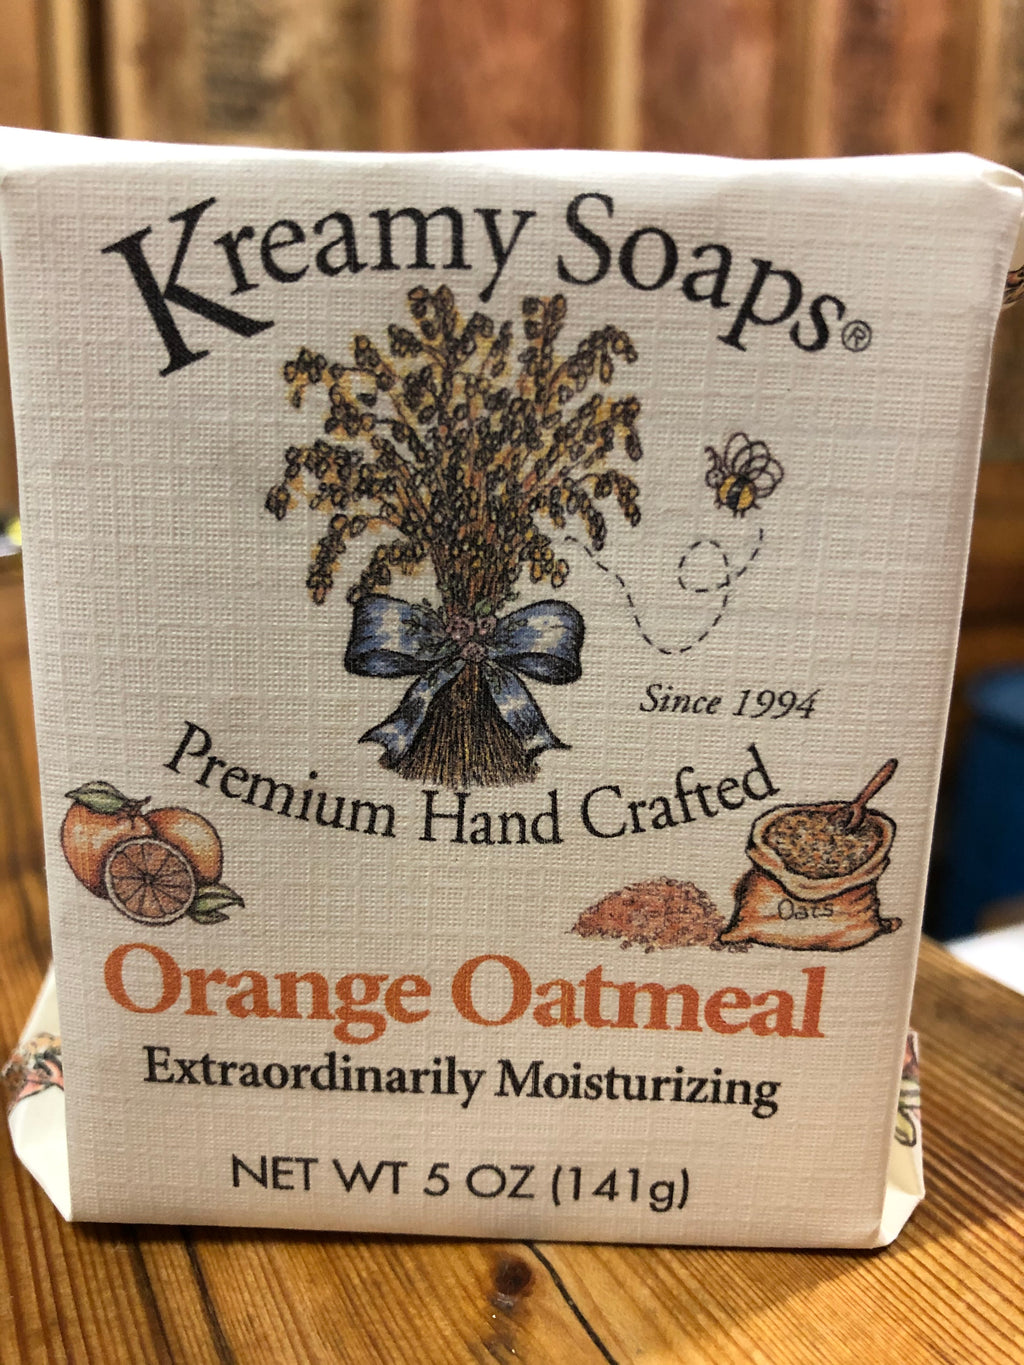 Orange Oatmeal - Kreamy Soaps